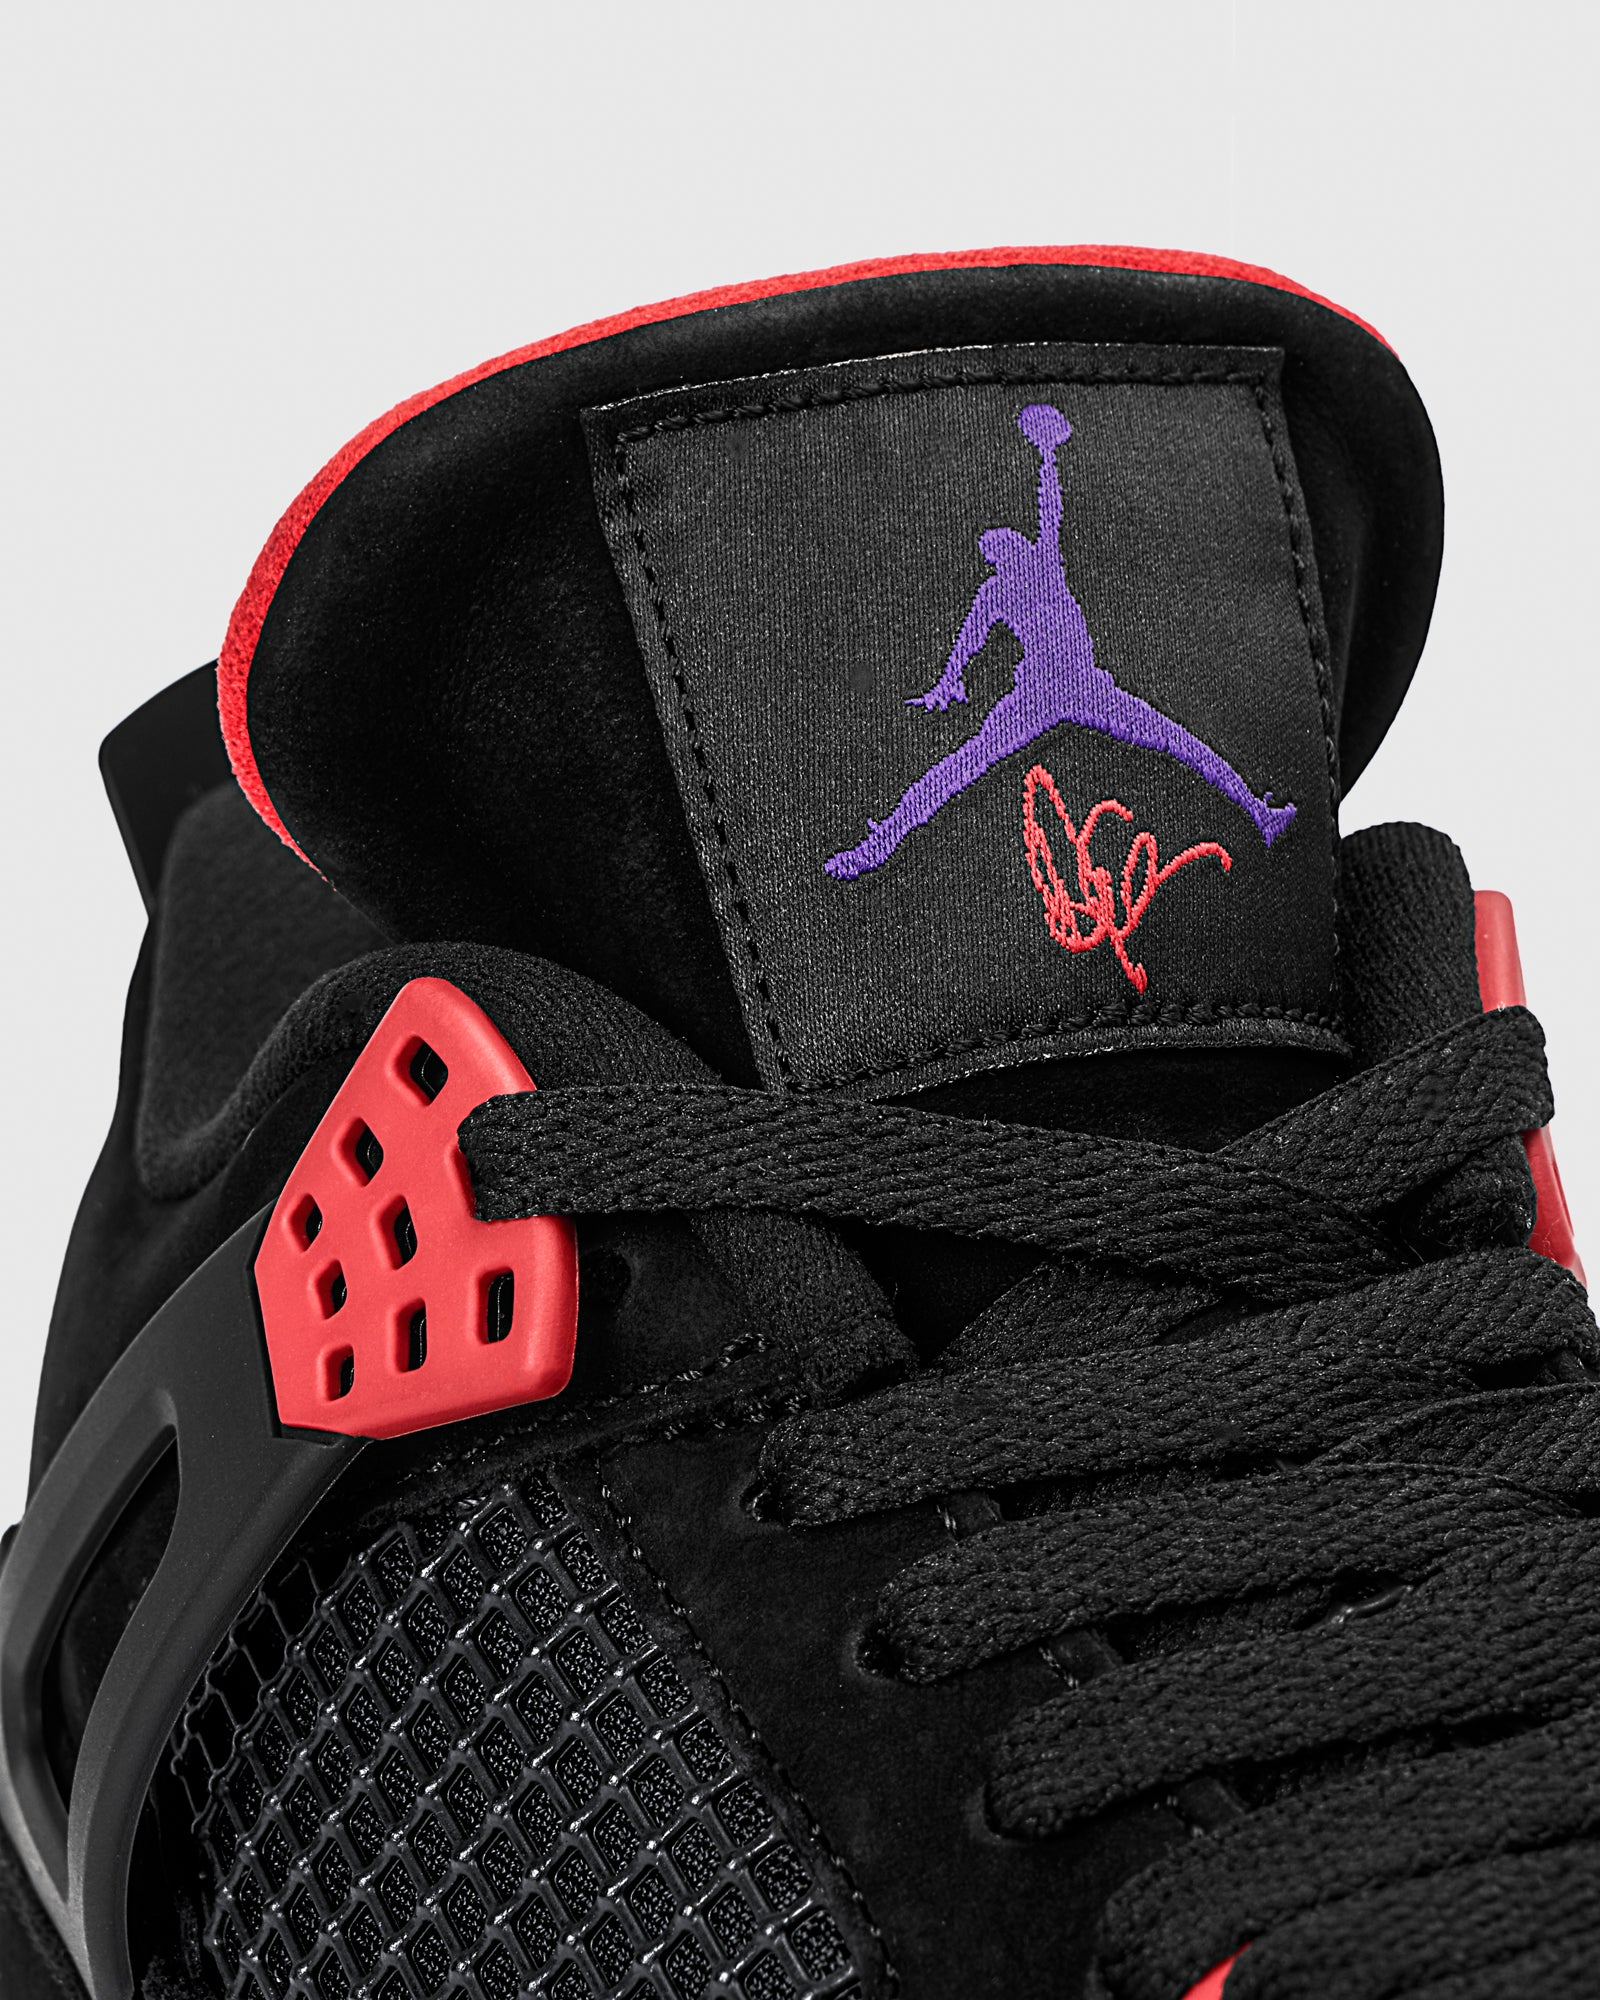 AIR JORDAN IV - BLACK/COURT PURPLE IMAGE #2